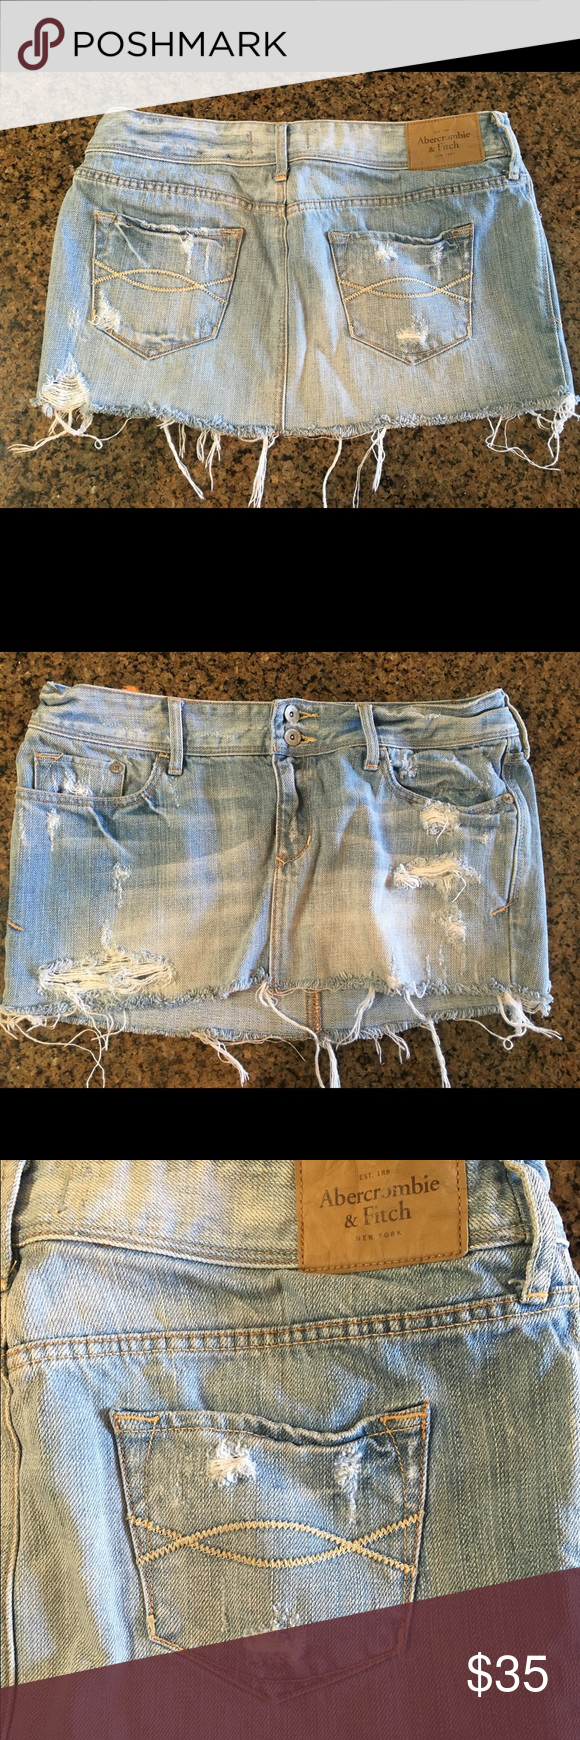 Abercrombie light denim short skirt Low rise light denim Abercrombie skirt. Fits comfortably at the waste Abercrombie & Fitch Skirts